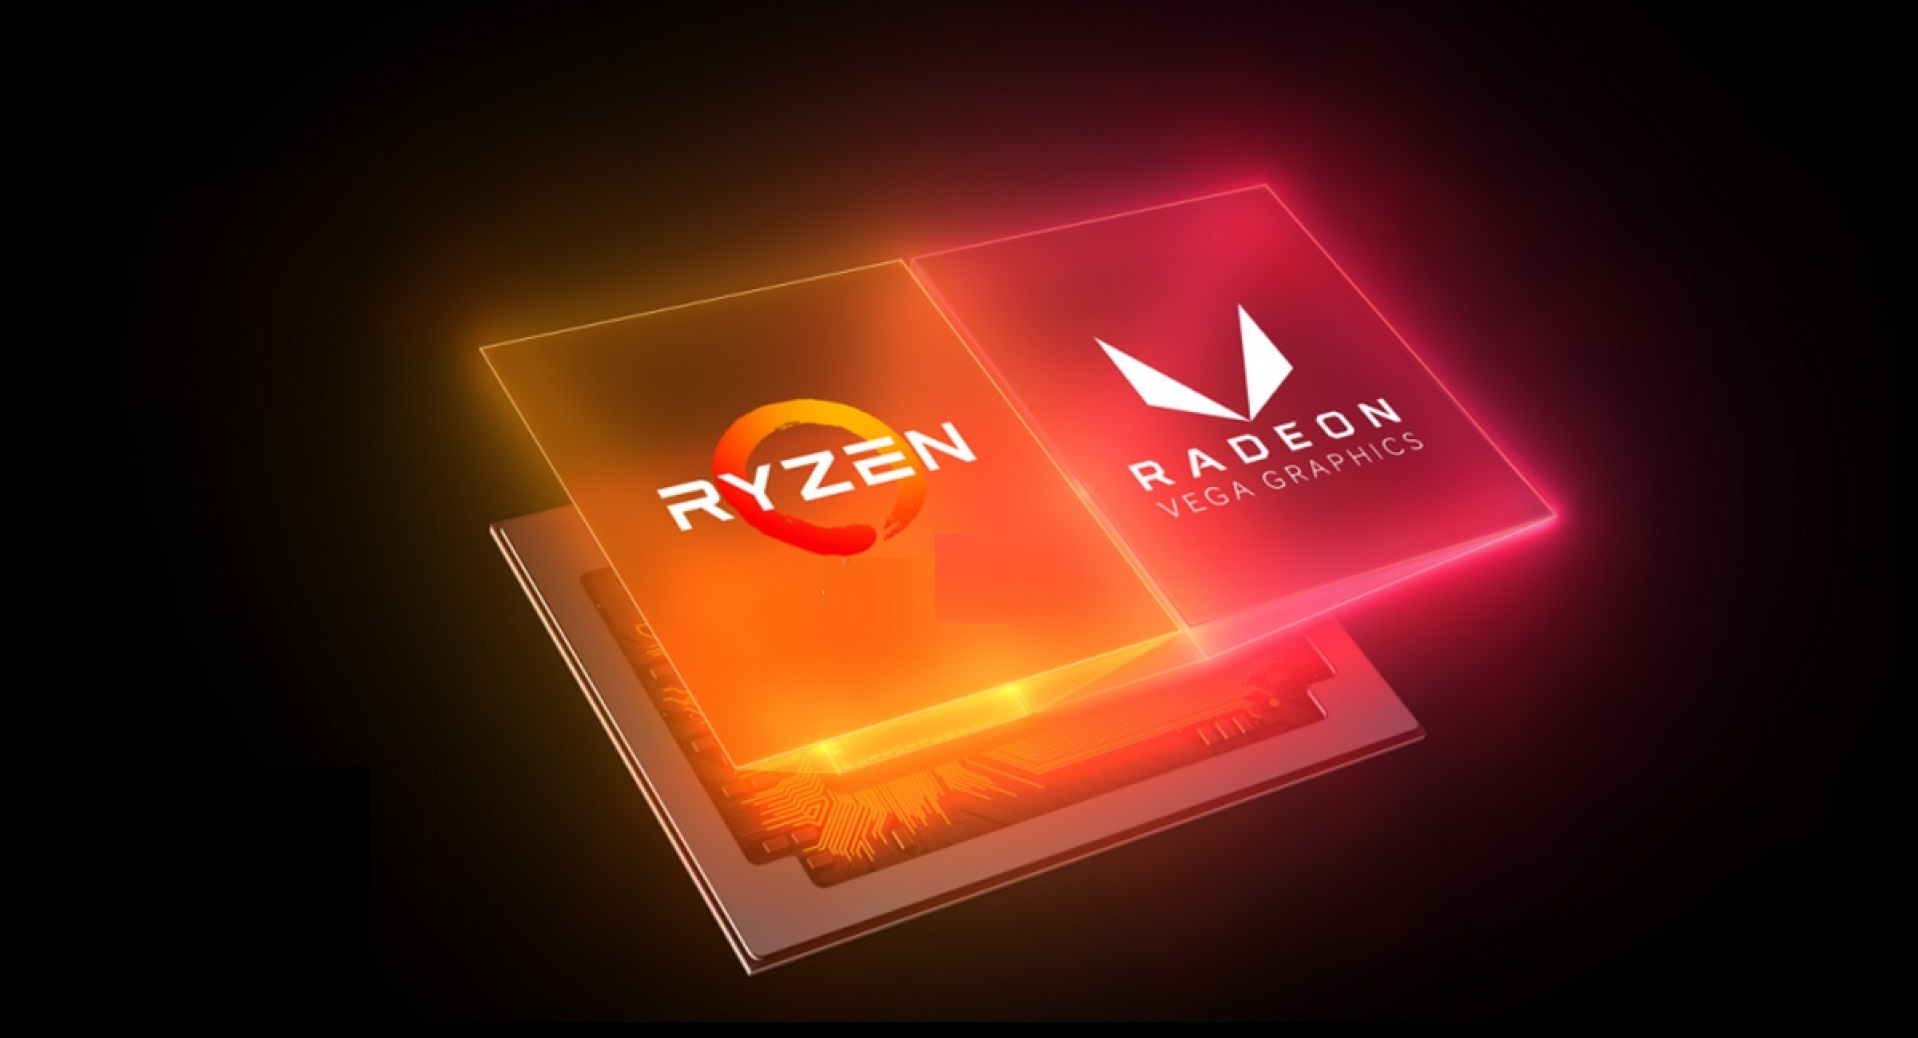 AMD Ryzen 9 3950X, the 16 core gaming CPU with a 4 7 GHz boost clock